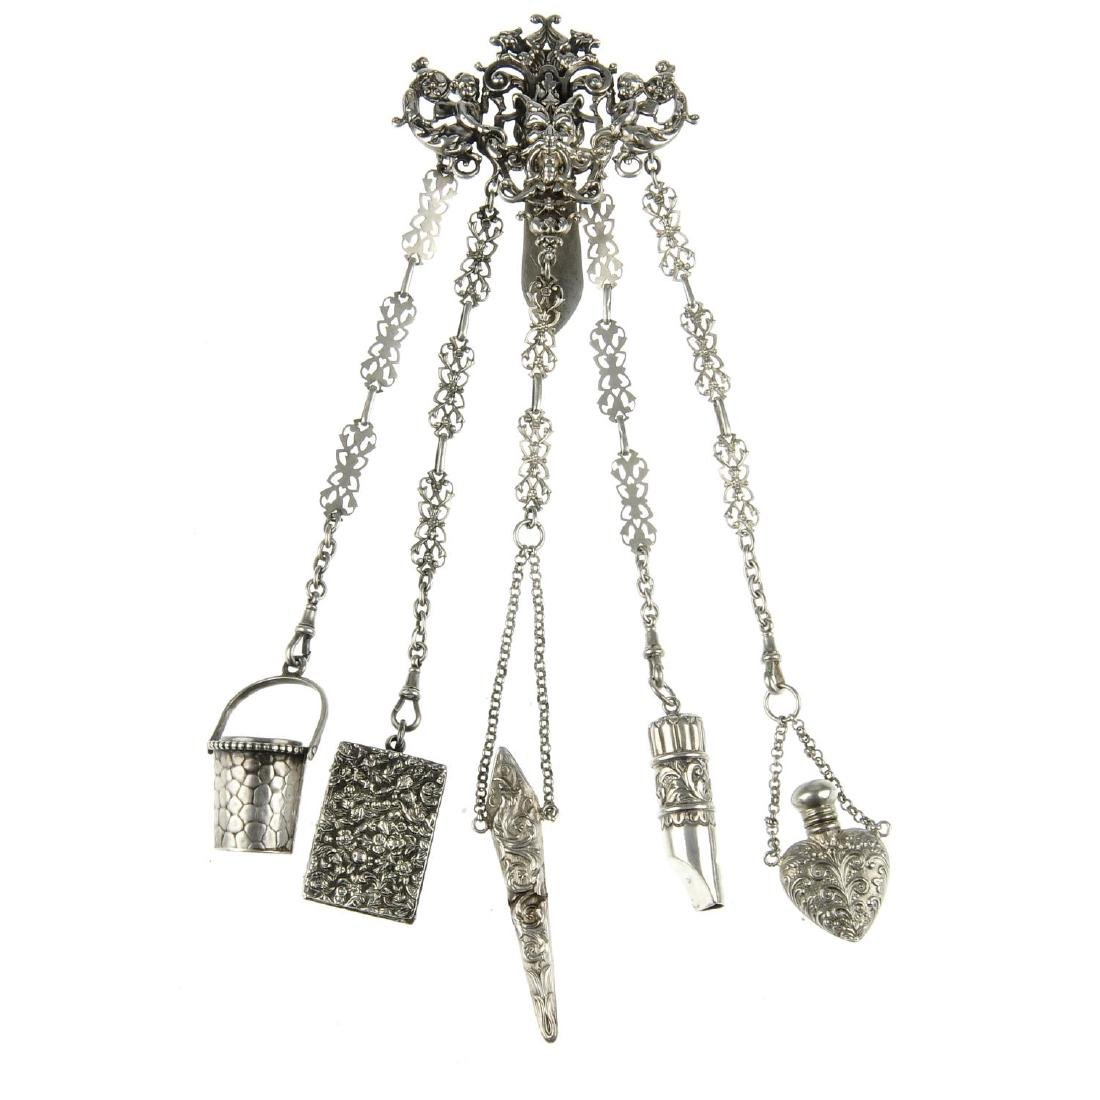 A late Victorian silver chatelaine. The upper section